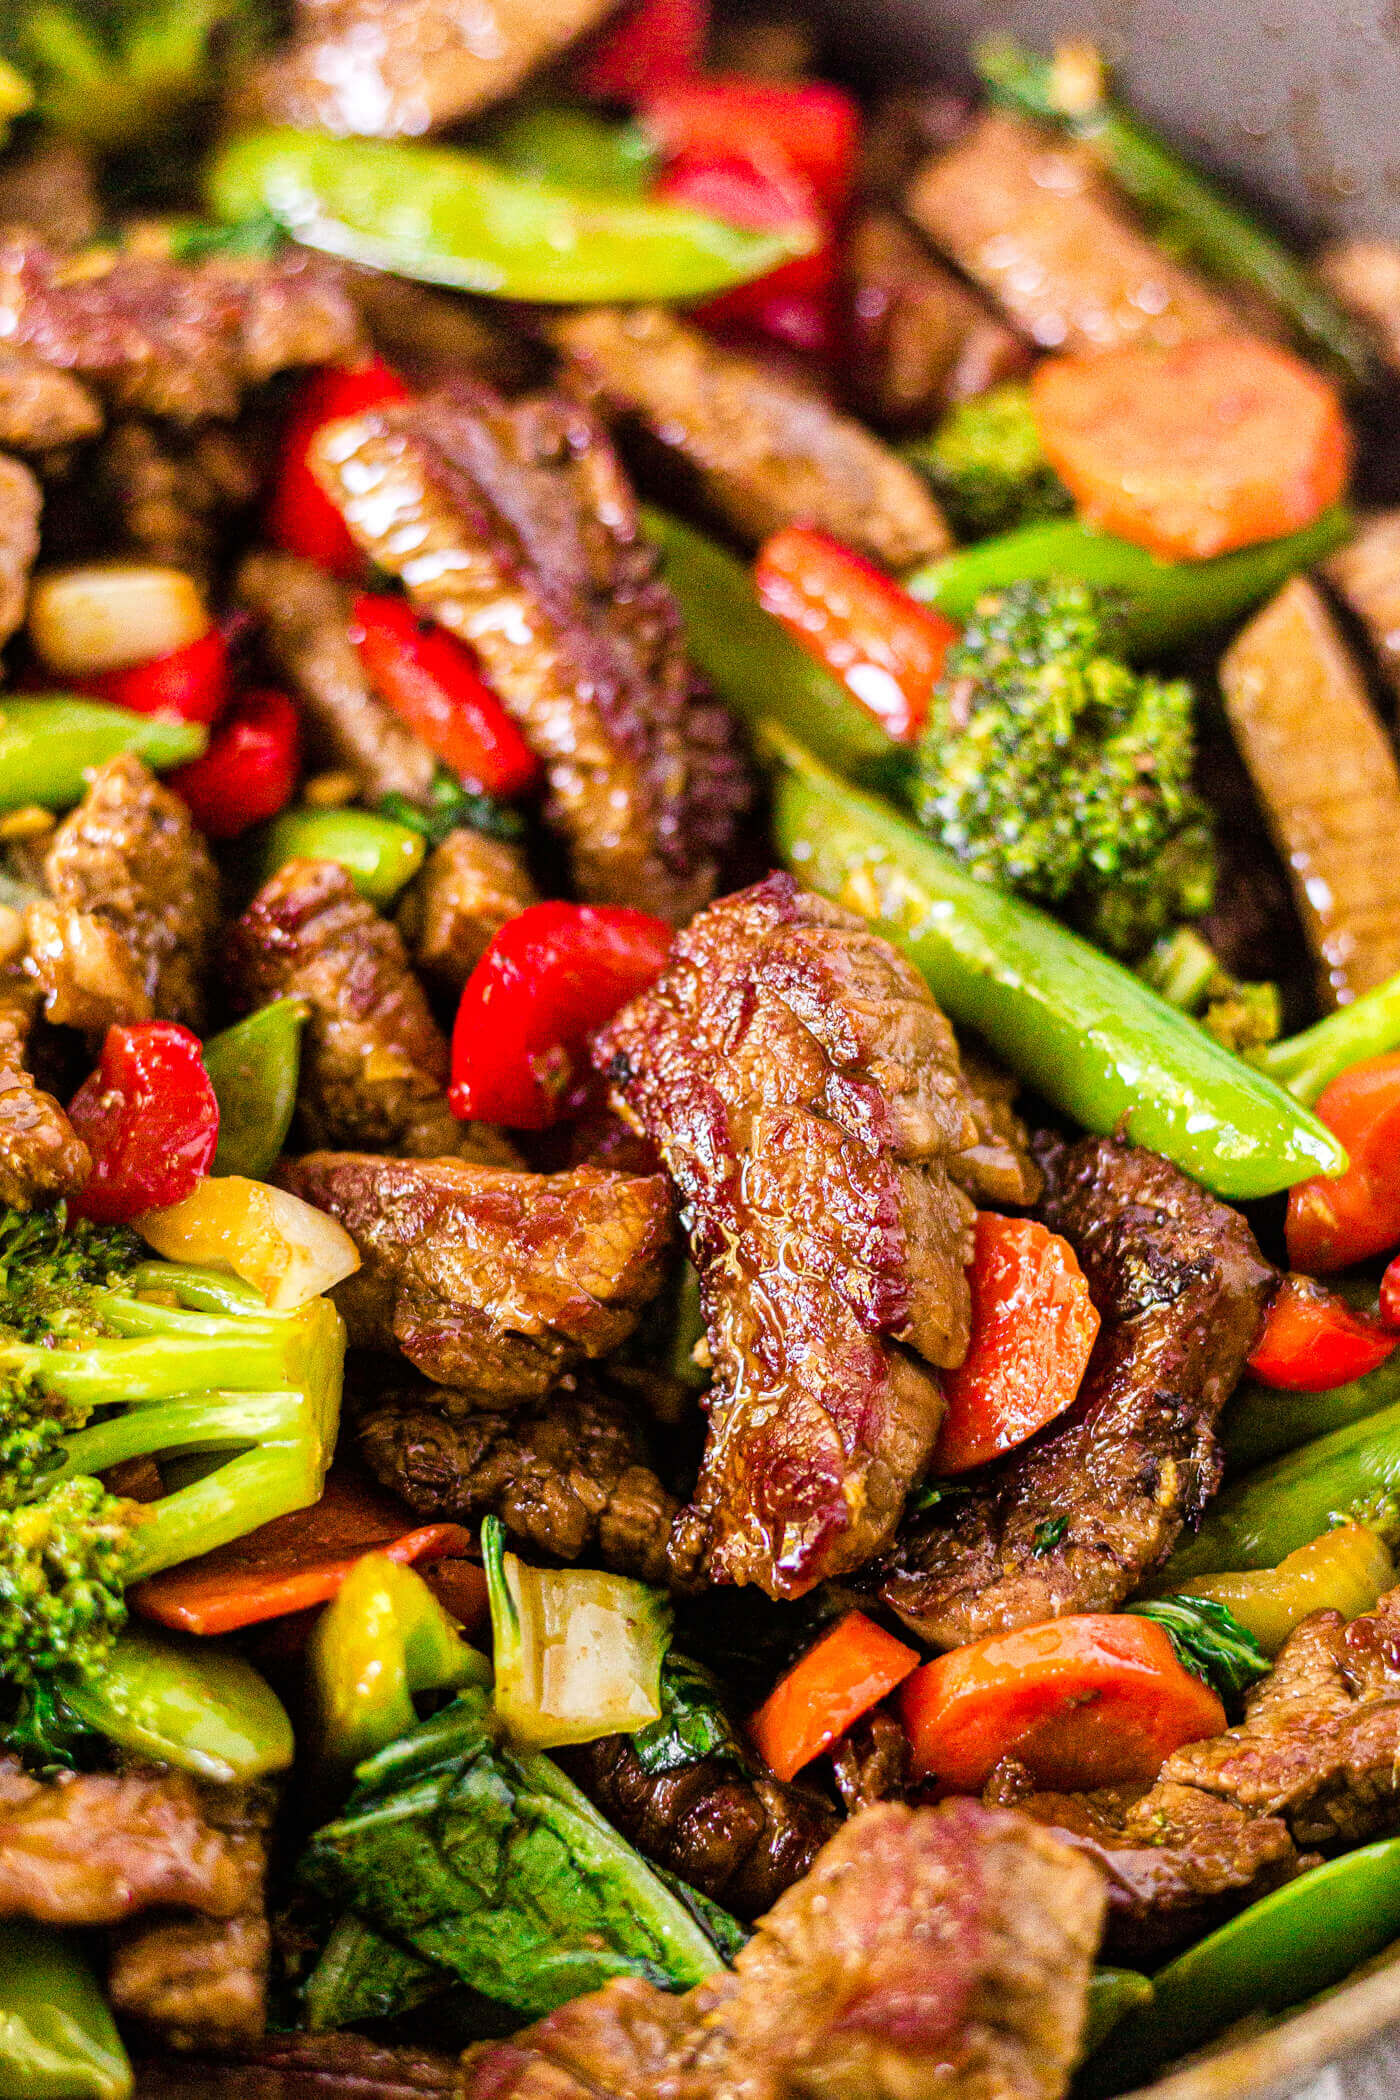 steak stir fry in a pan with veggies and teriyaki sauce